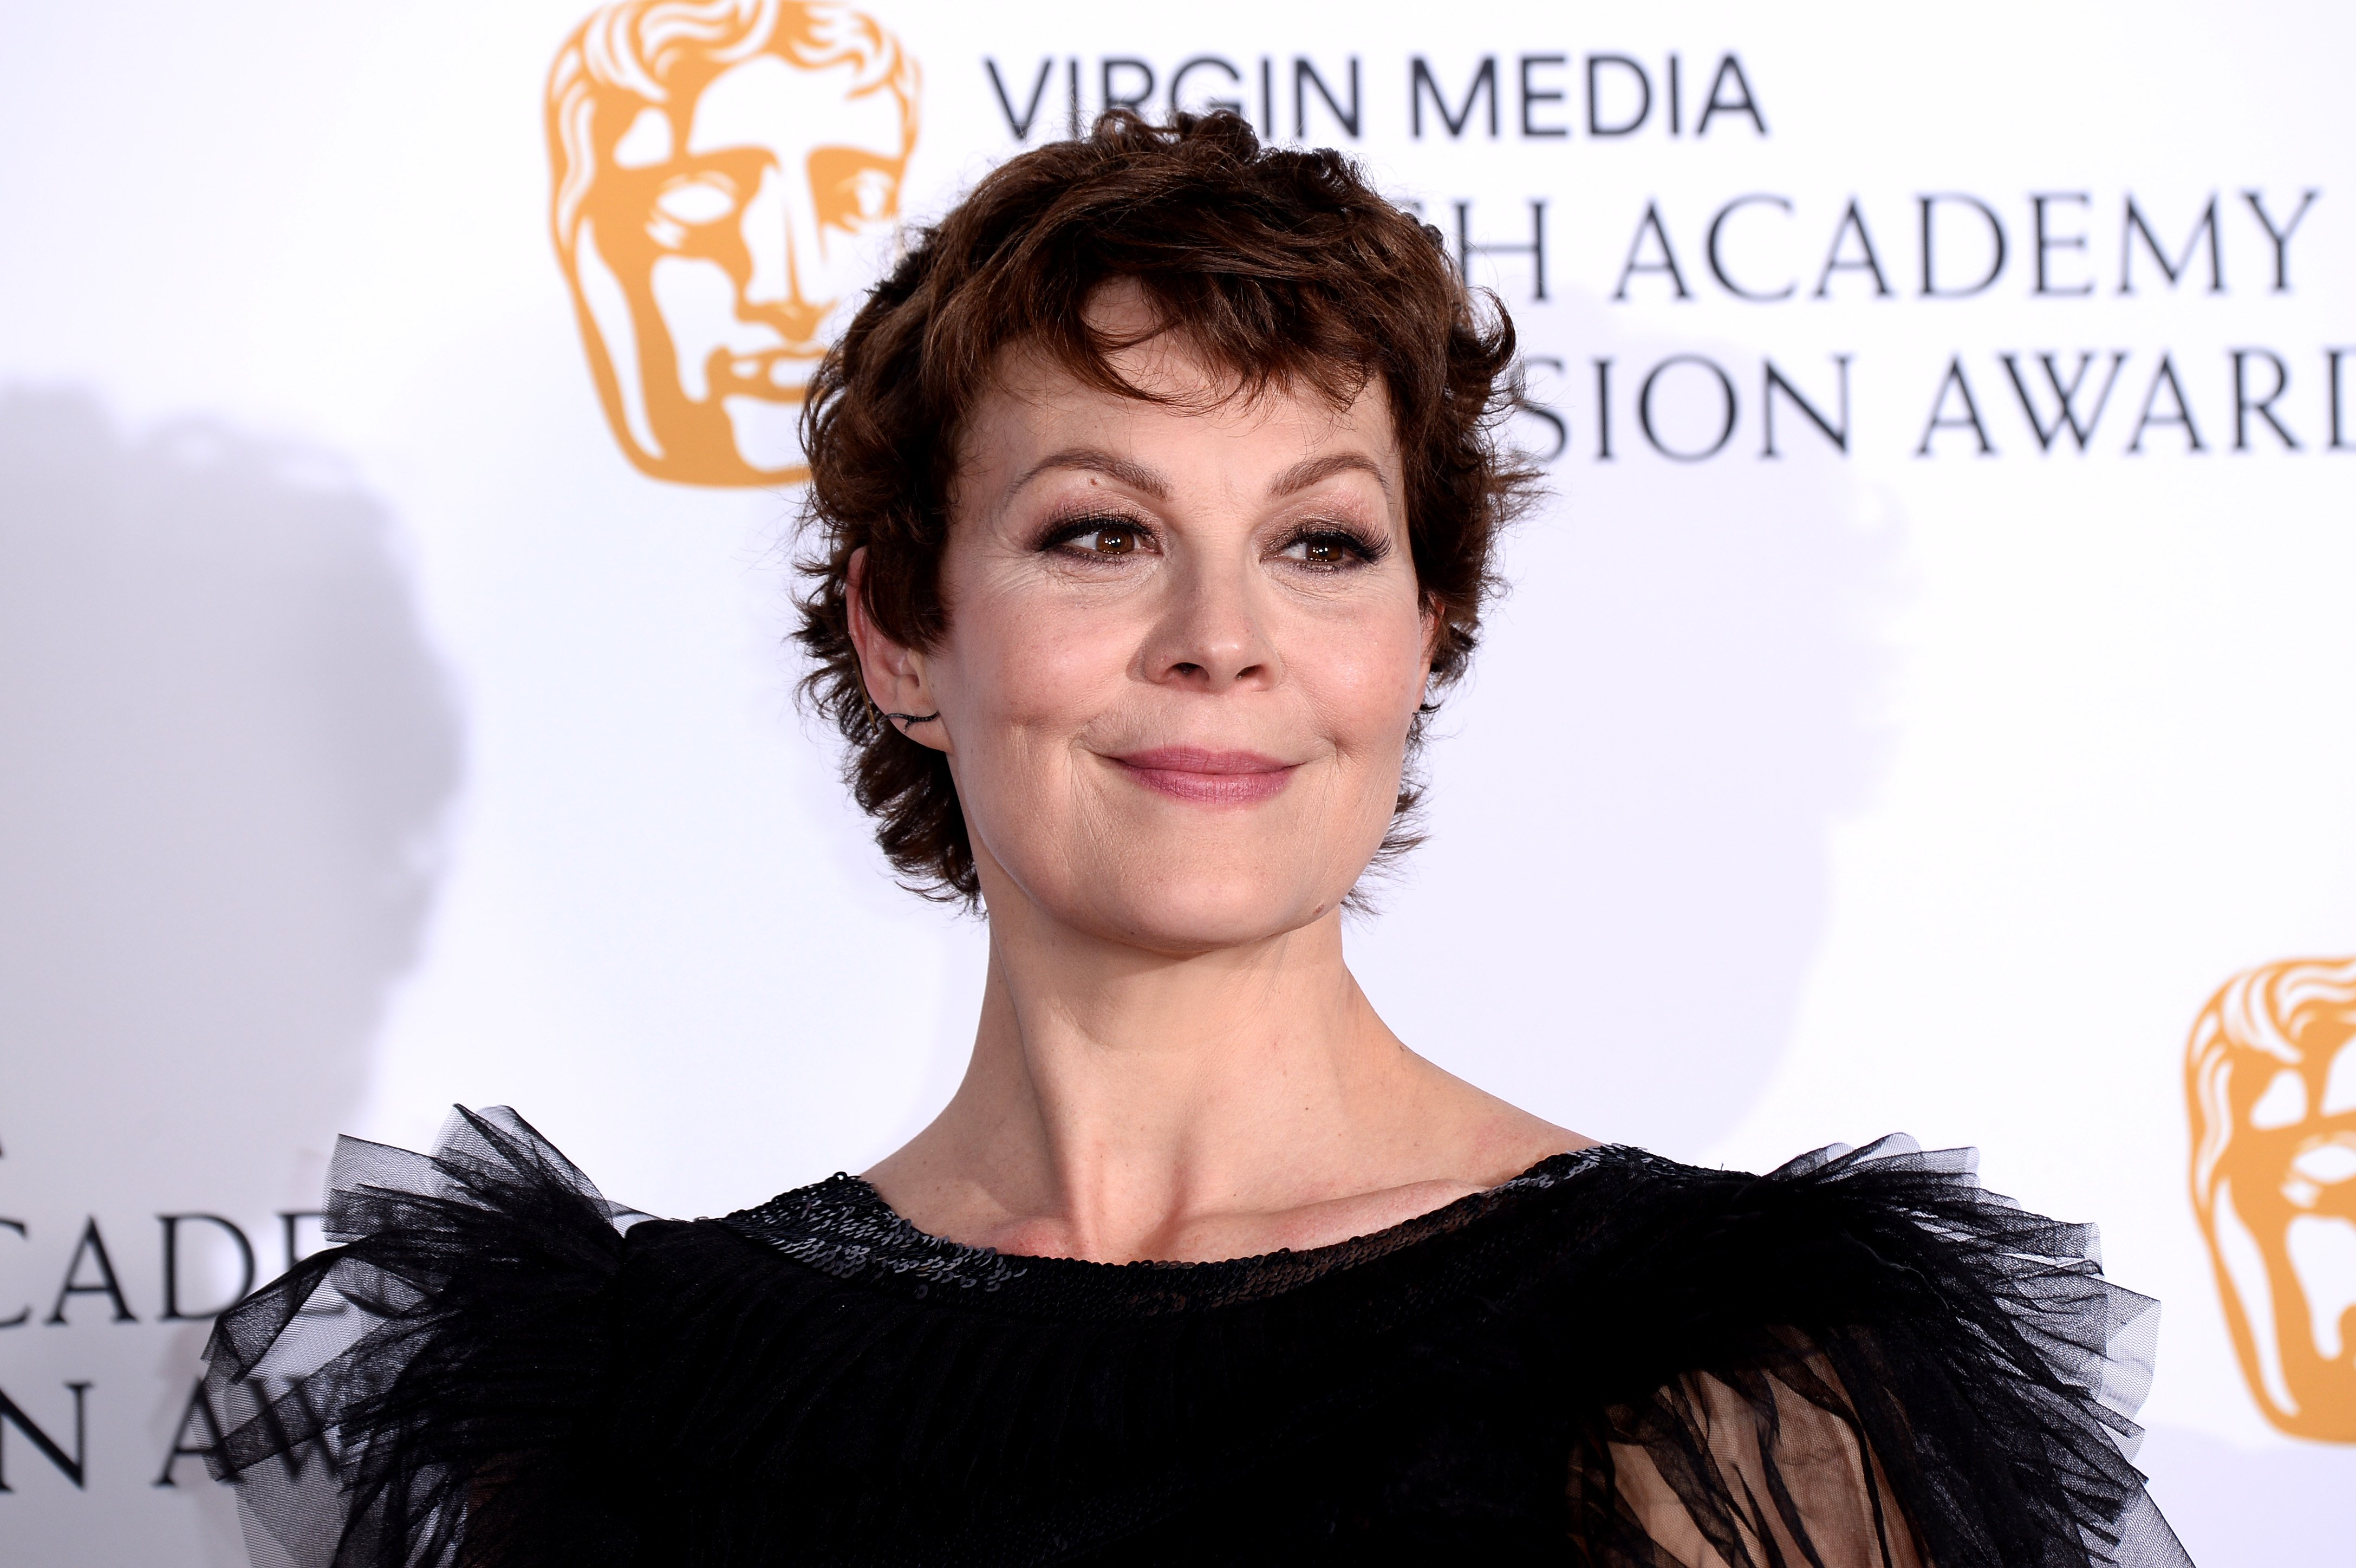 Helen McCrory at the Virgin TV BAFTA Television Awards at The Royal Festival Hall on May 12, 2019 in London, England | Photo: Getty Images